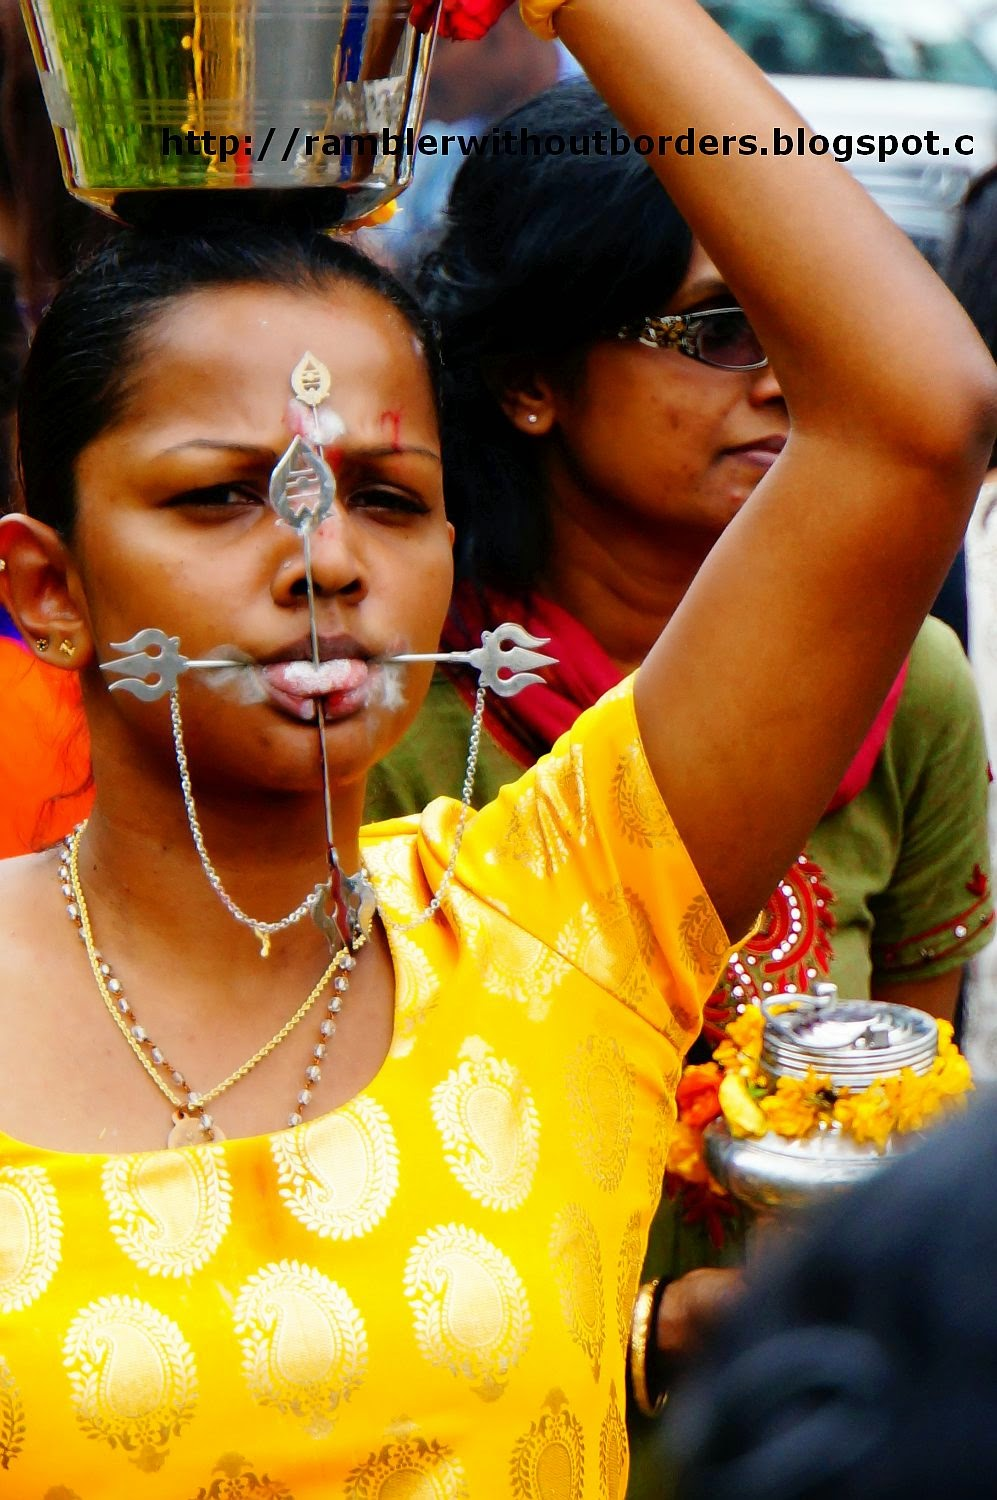 devotees with tongue piercings in Thaipusam Festival, Singapore